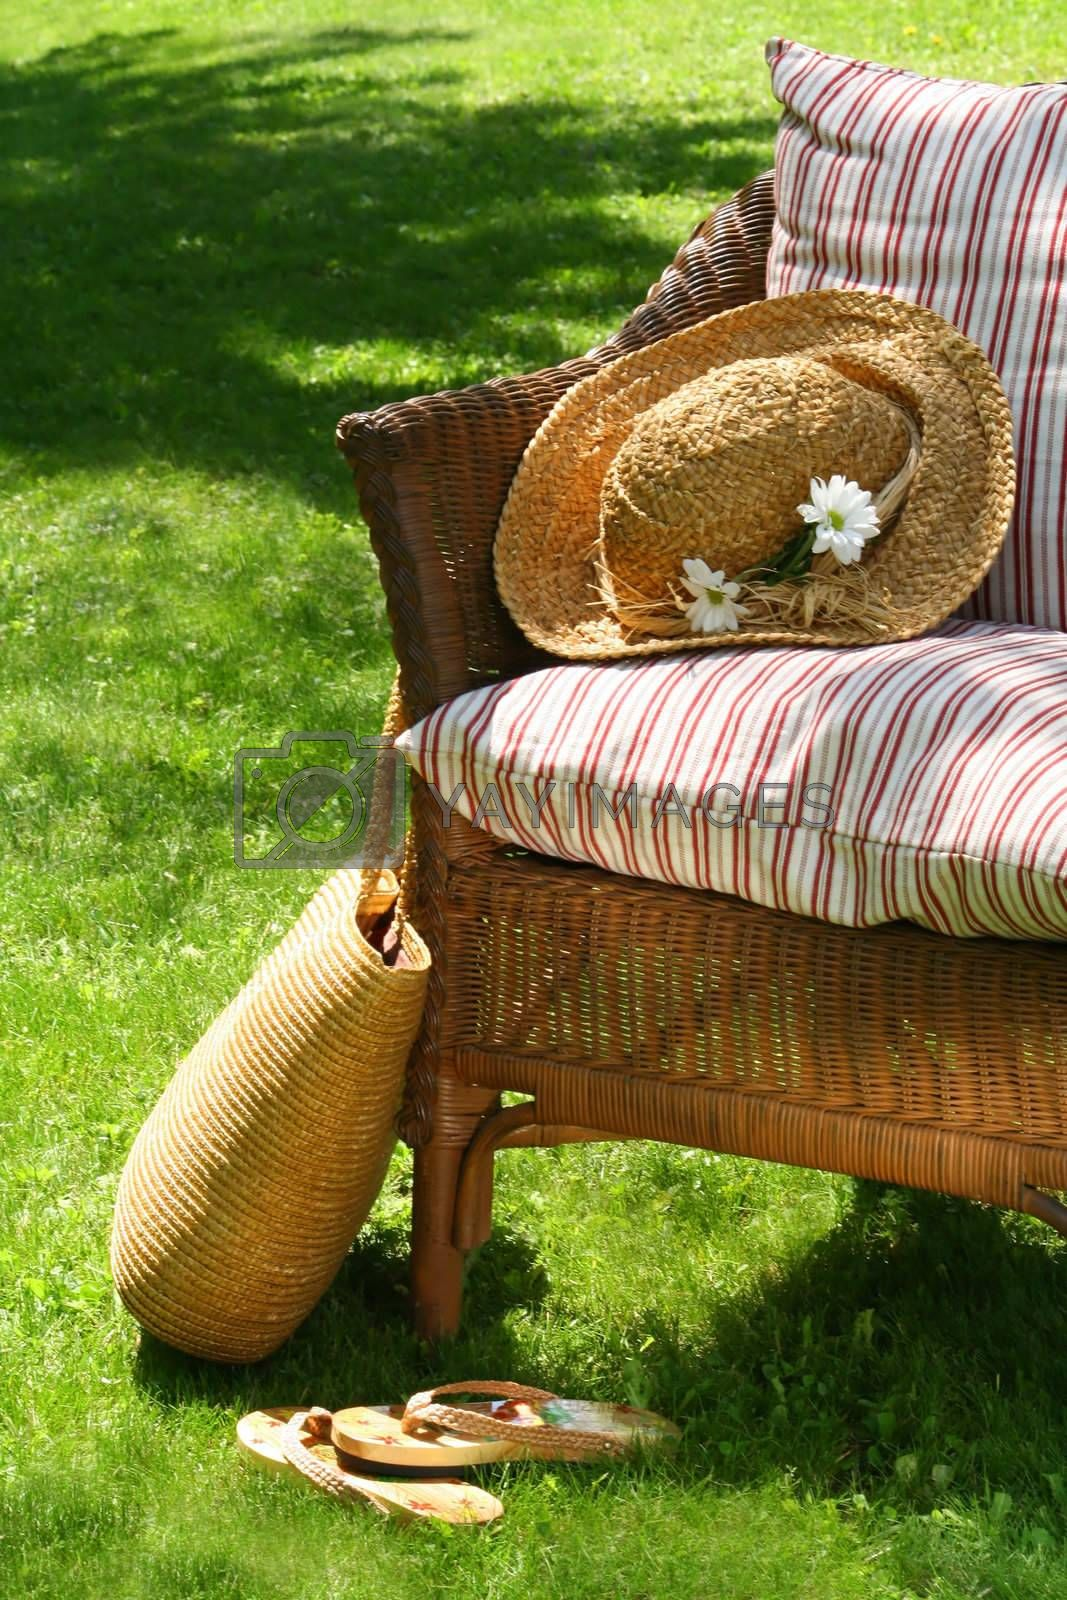 Grass lawn with a wicker chair waiting for someone to relax on a hot summer's day